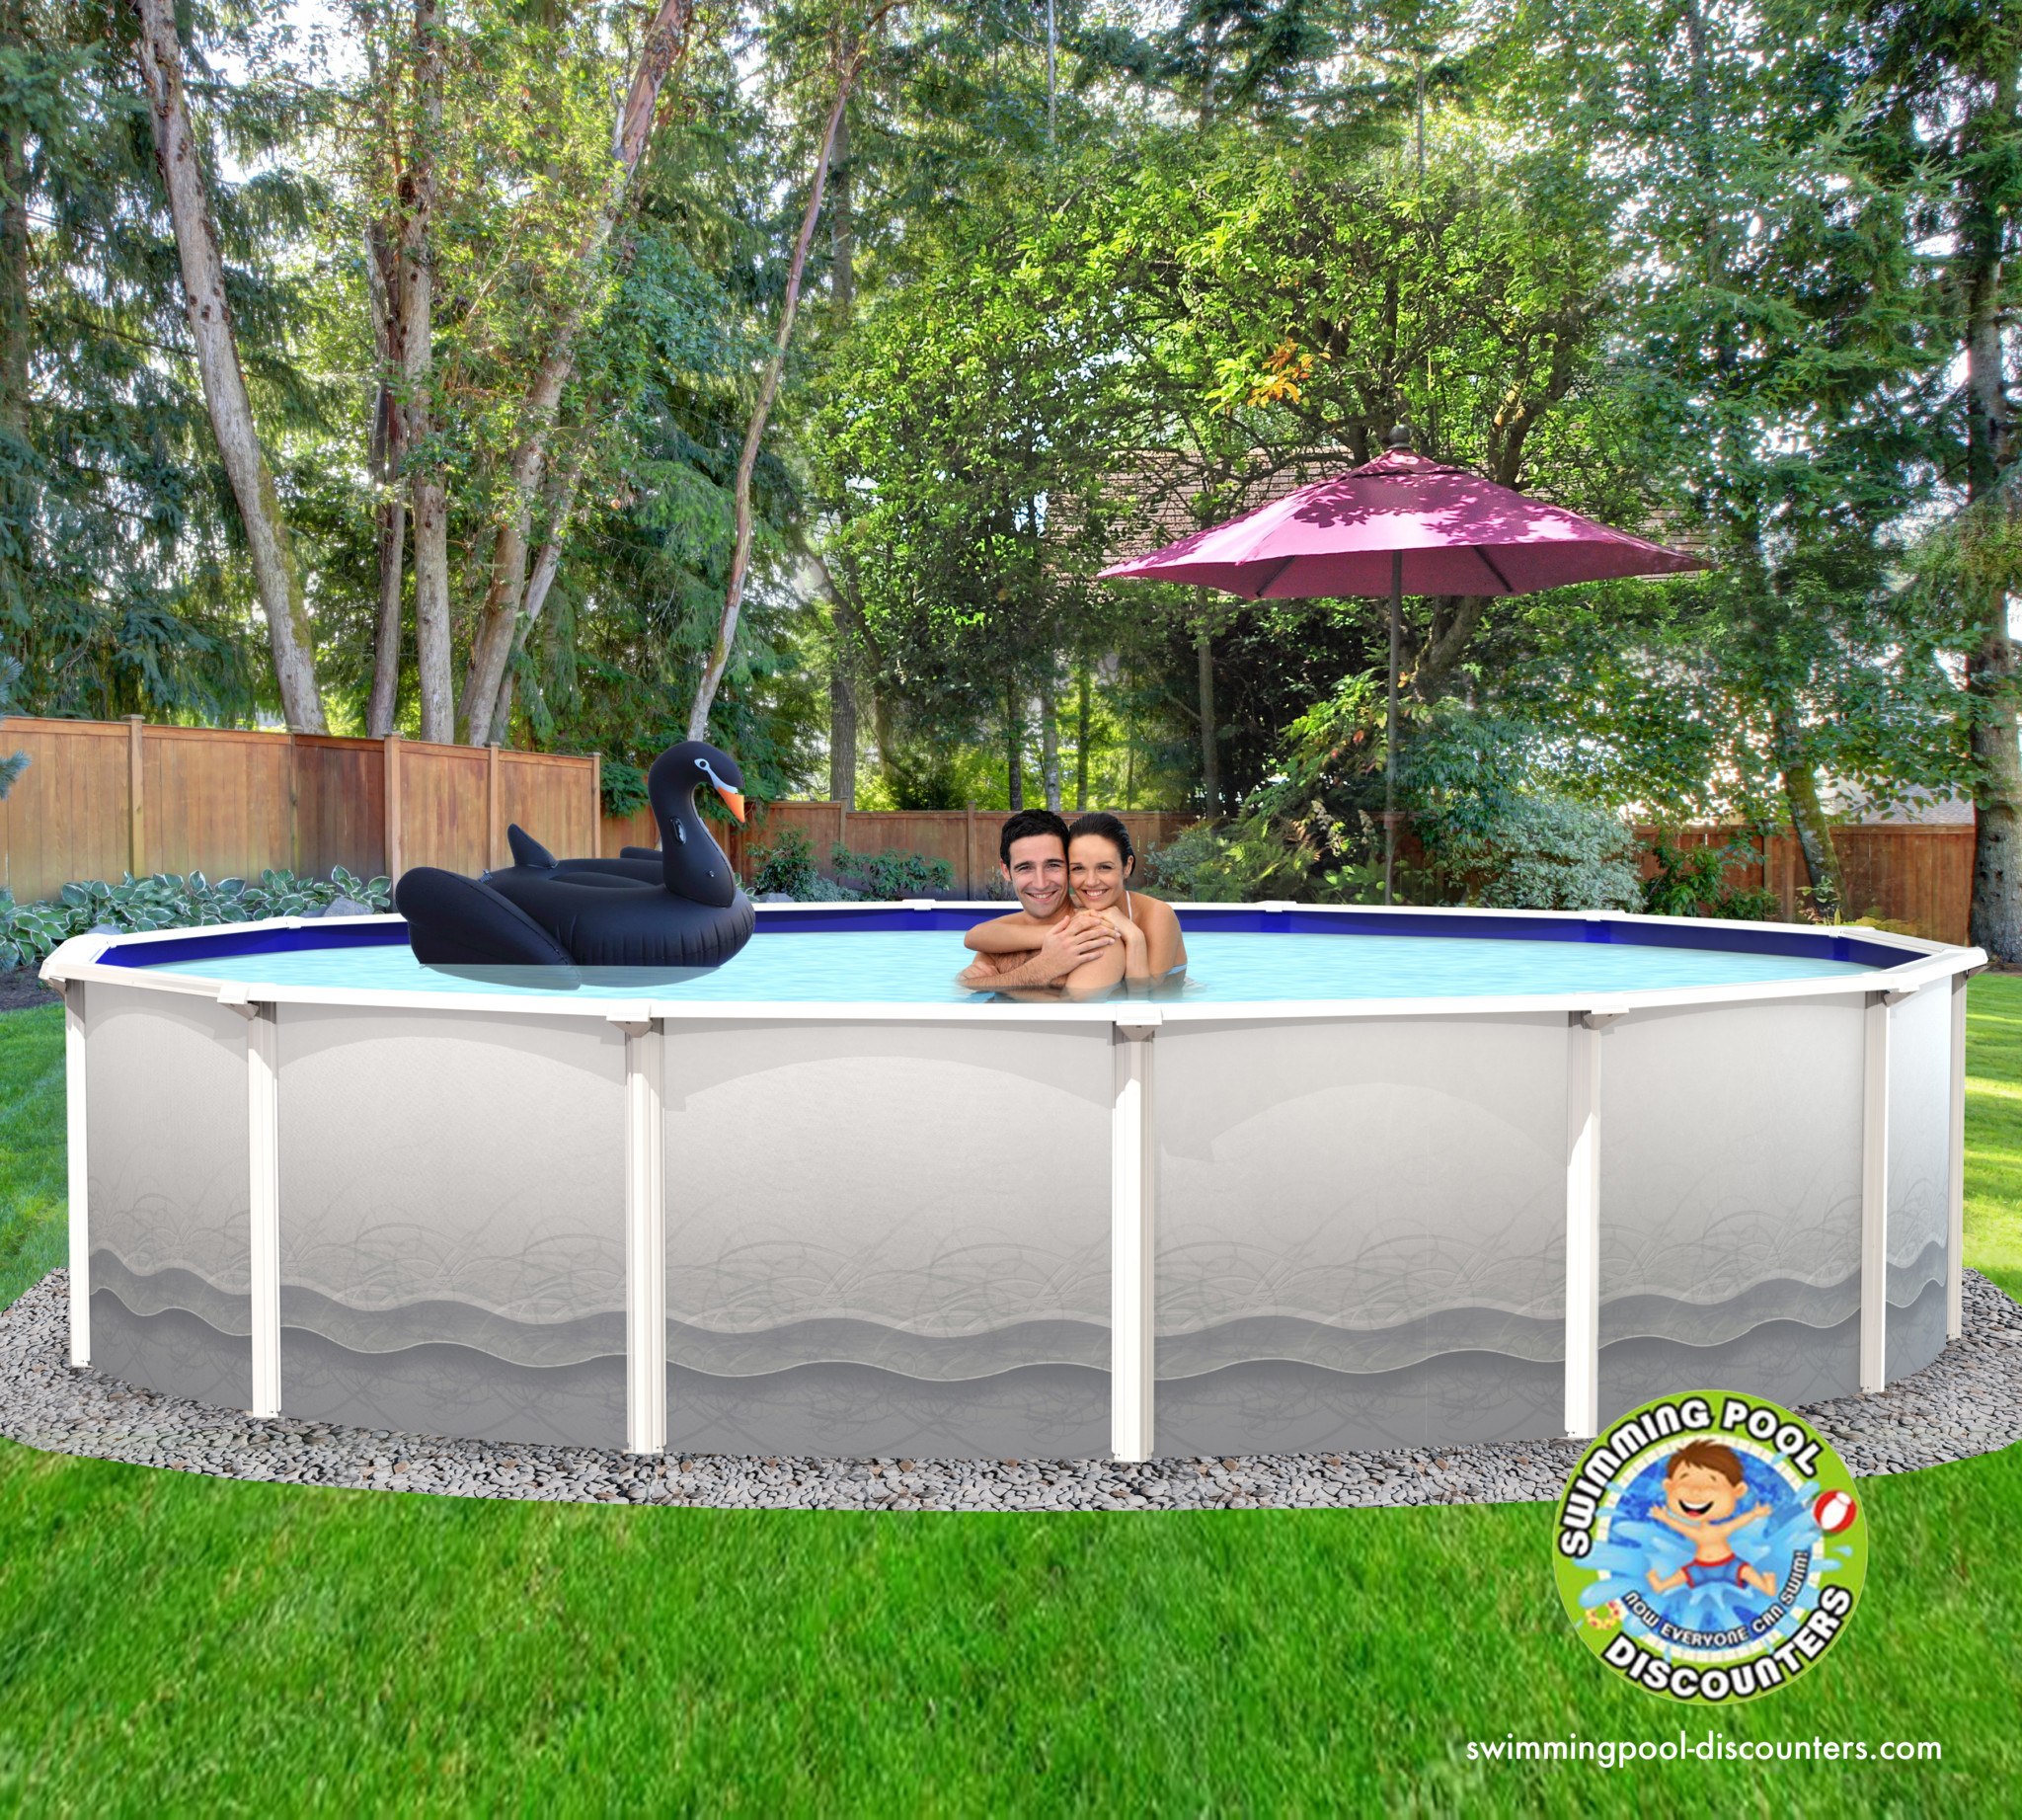 2020 RG-5000 24\'X52″ Round (7in) Steel Pool with FREE GOODS ...